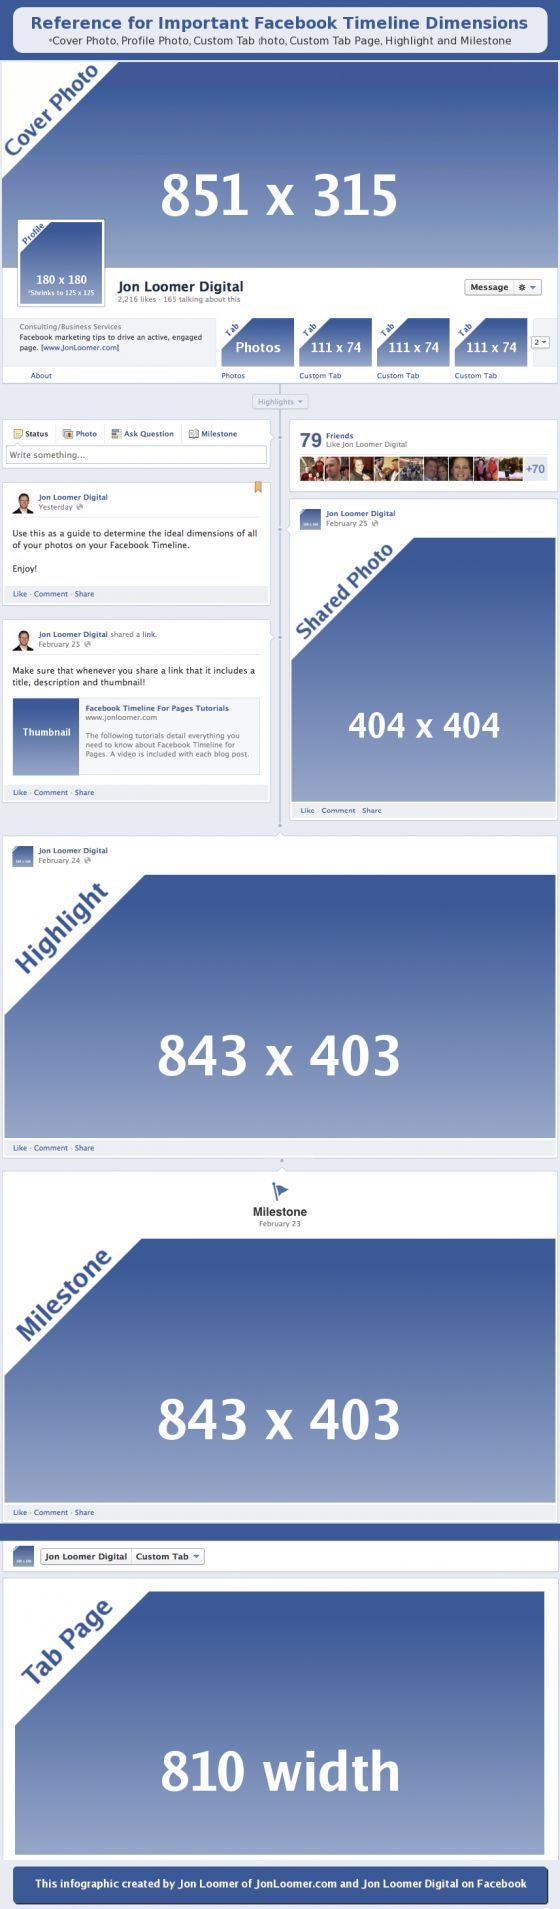 Facebook Timeline for Business Pages Dimensions Made EasyMarketing Strategies, Digital Marketing, Timeline Covers, Social Media, Facebook Timeline, Cheat Sheet, Covers Photos, Infographic, Socialmedia